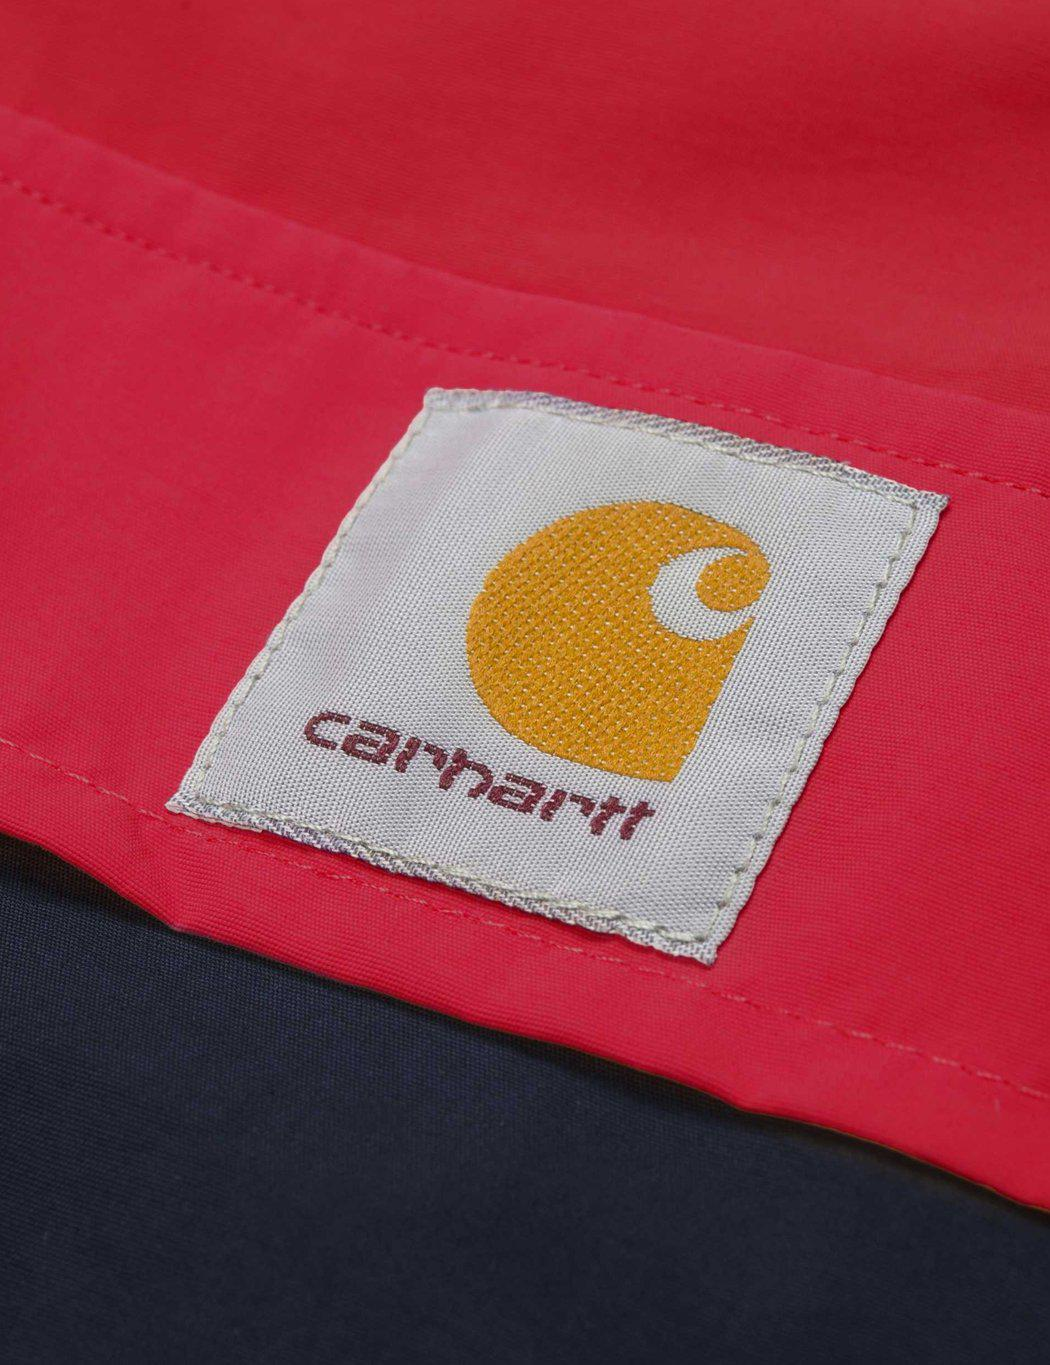 Carhartt Synthetic Nimbus Two Tone Half-zip Jacket (un-lined) in Red for Men